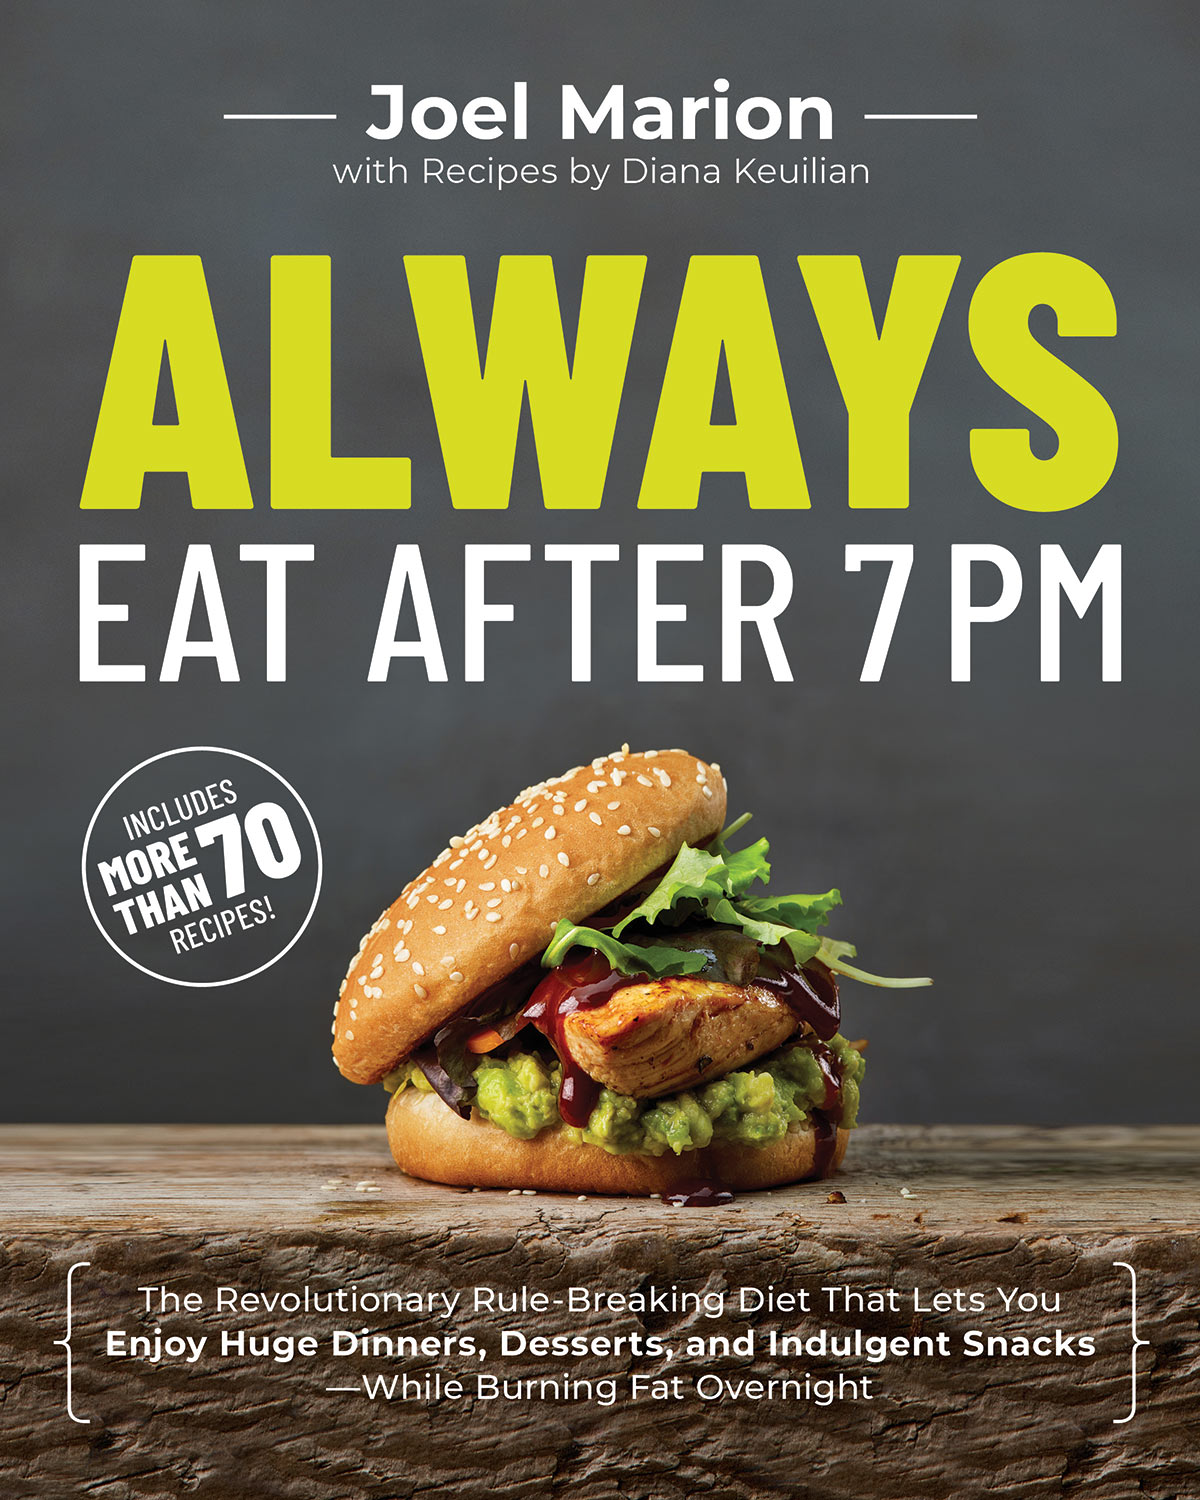 Always Eat After 7PM: Why I Chose this Diet Book | Atsuna Matsui